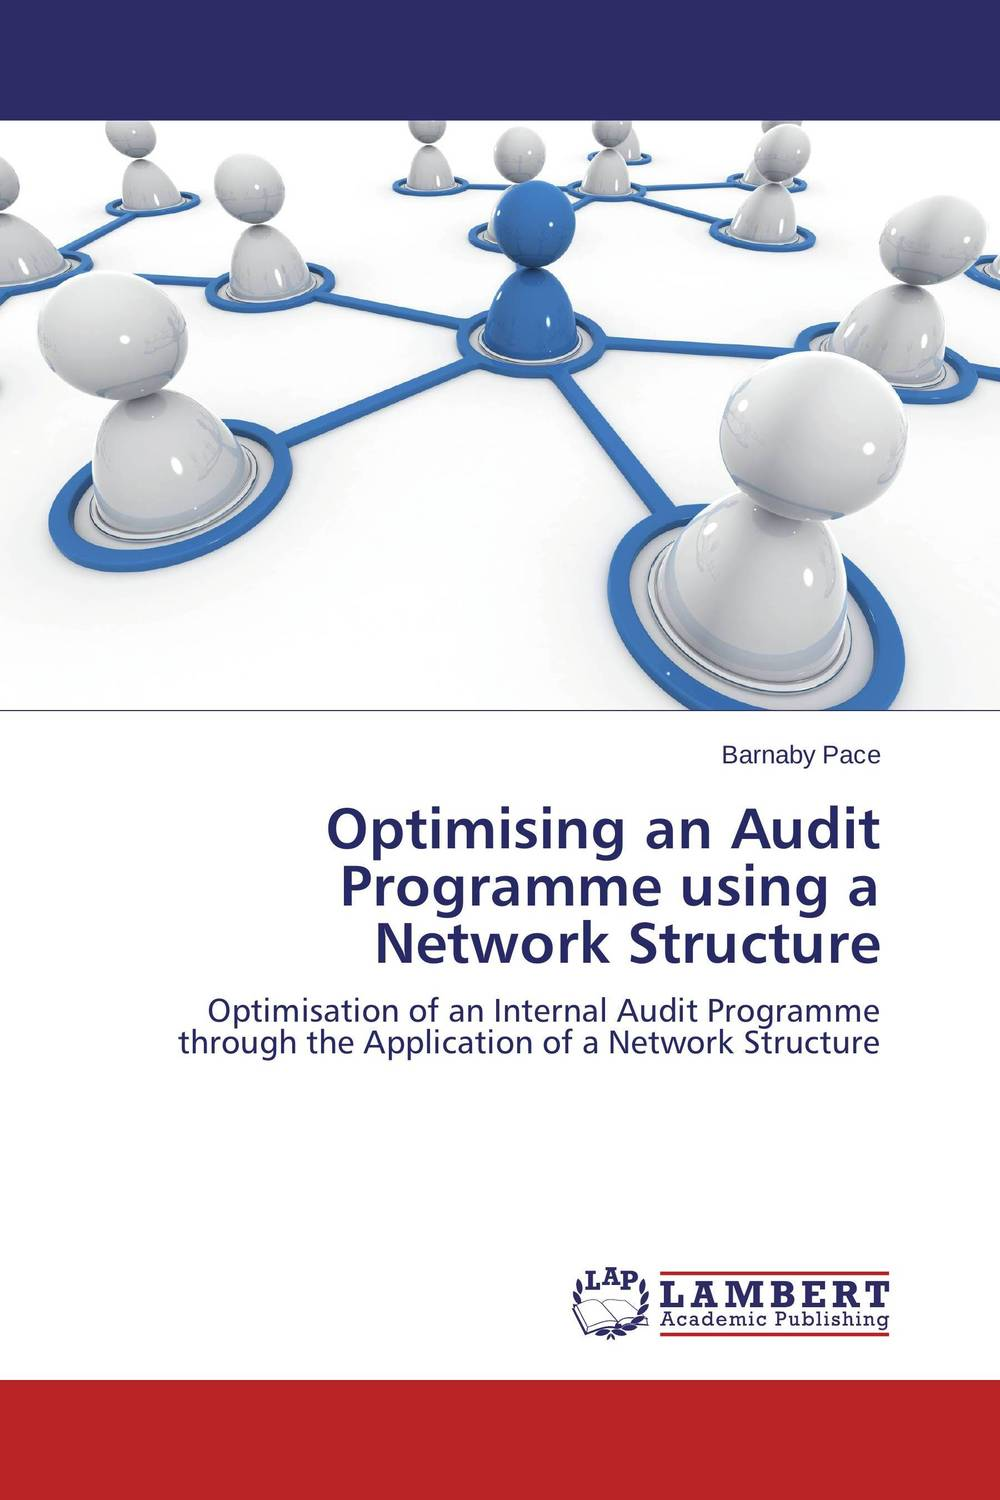 Optimising an Audit Programme using a Network Structure